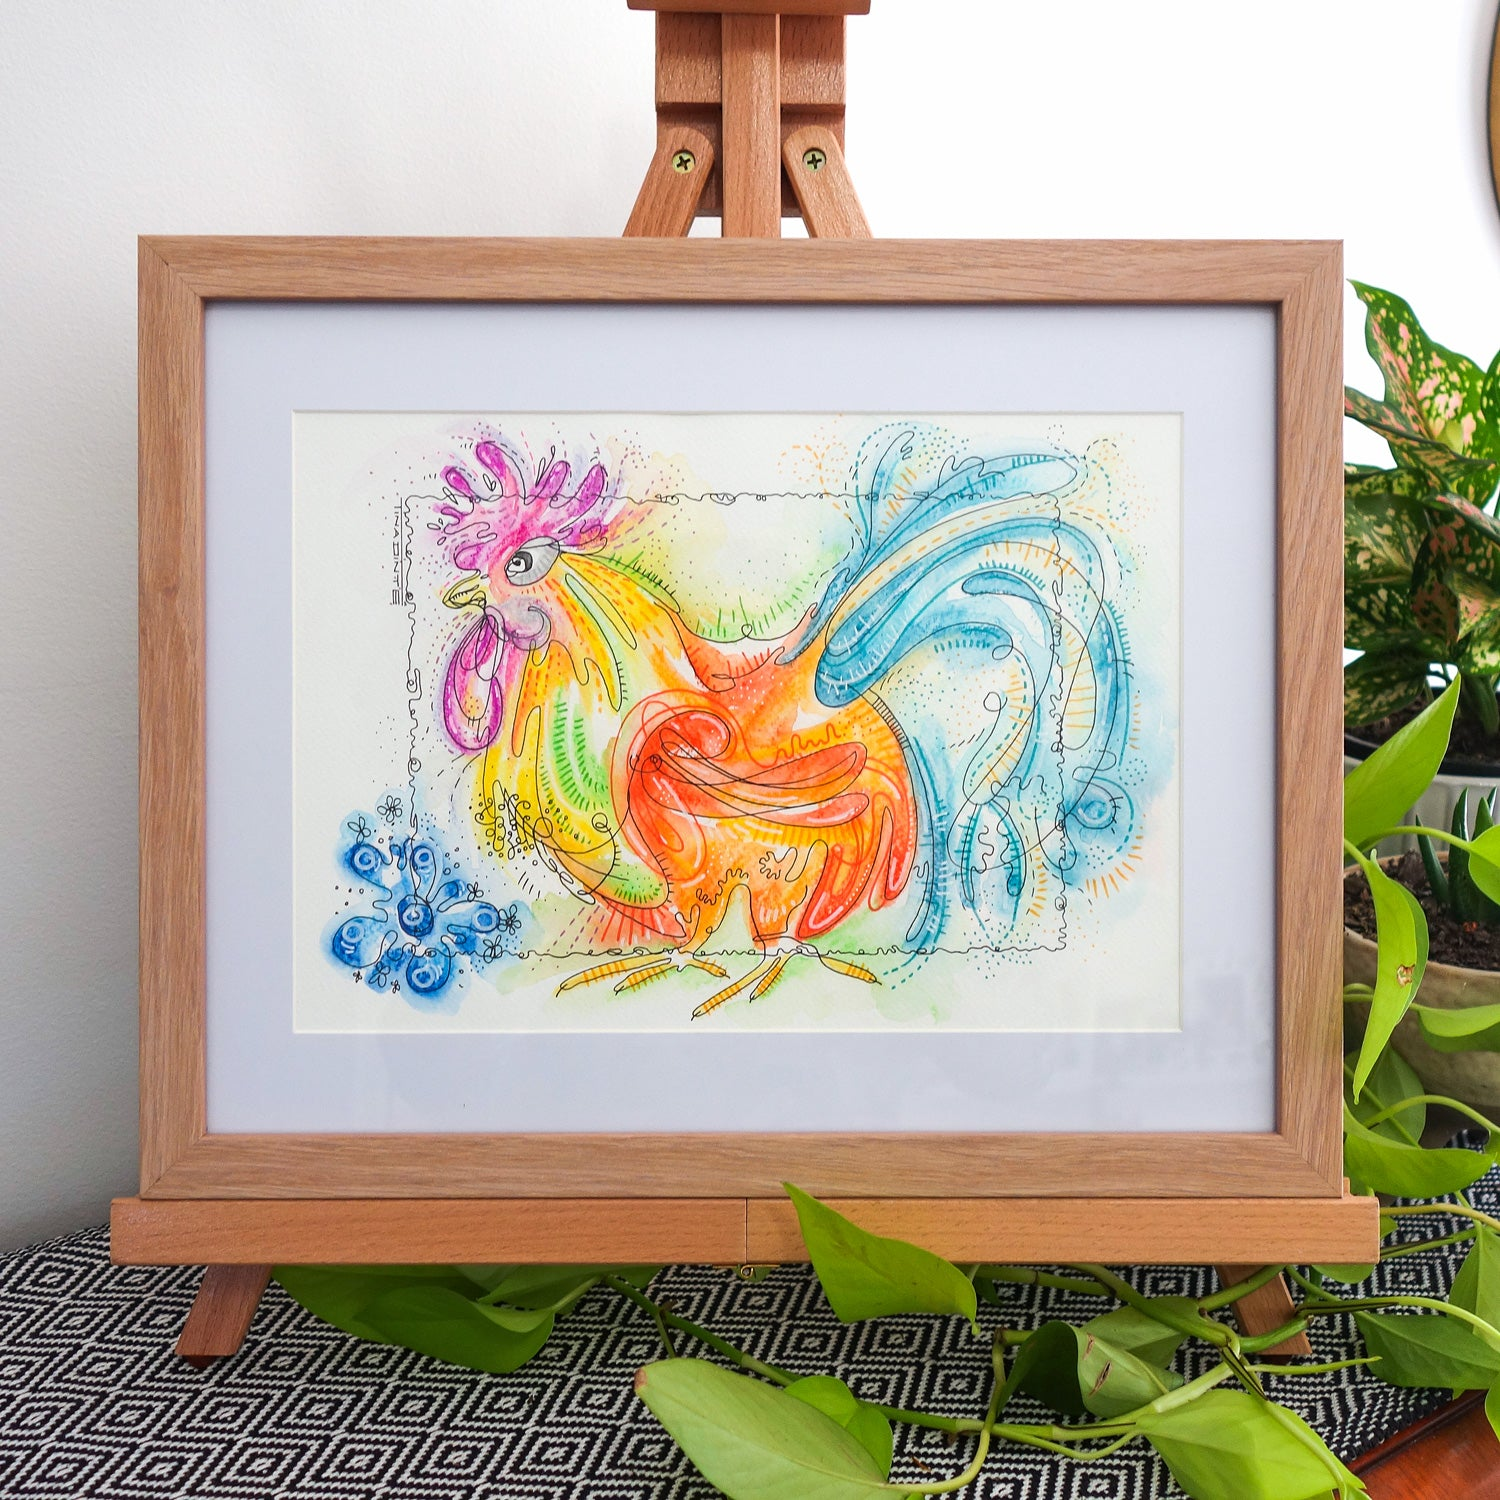 Roger Rooster Framed Original Illustration